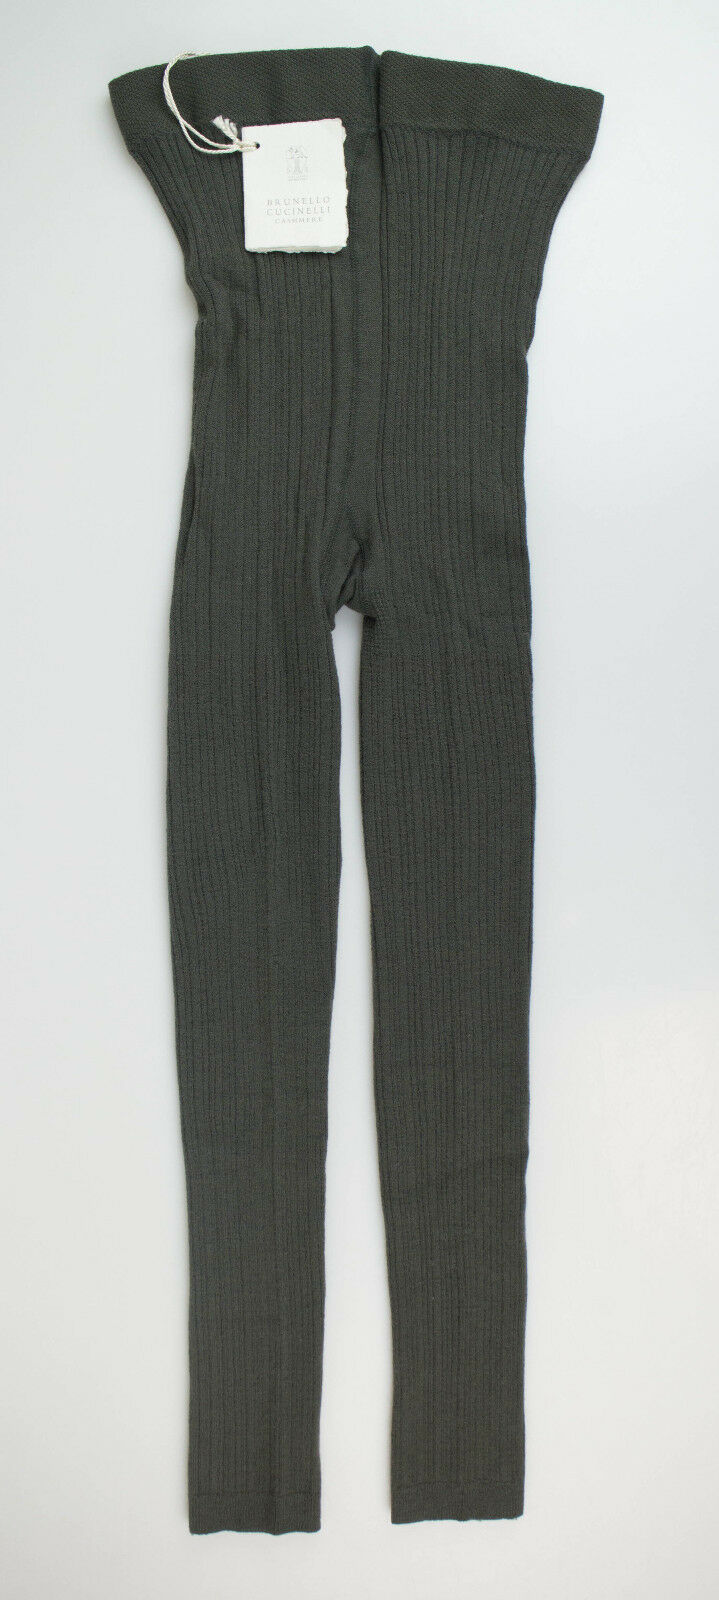 New BRUNELLO CUCINELLI Hunter Green Cashmere Blend Footless Tights Tights Tights Size XL  675 dd5056